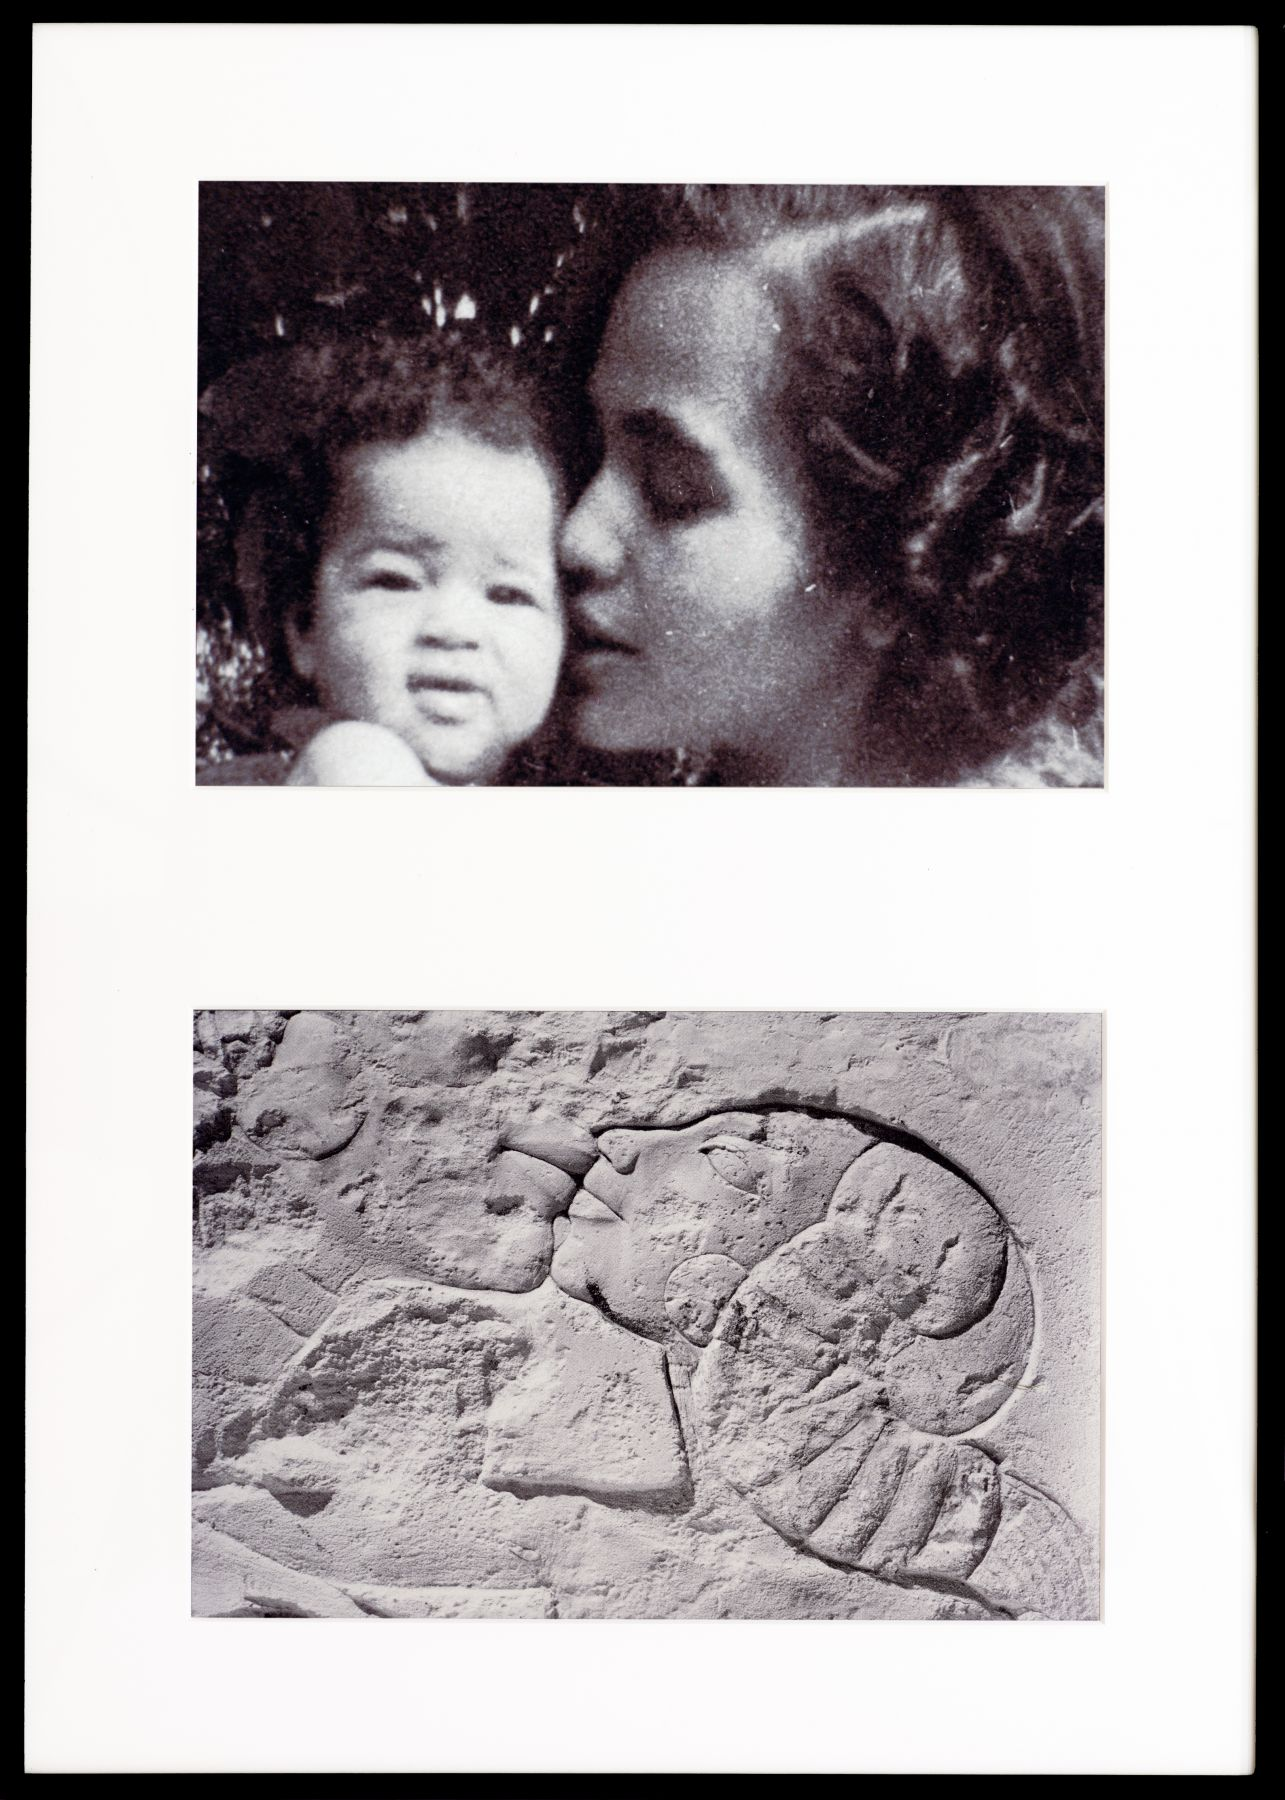 LorraineO'Grady Miscegenated Family Album (A Mother's Kiss), T: Candace and Devonia; B: Nefertiti and daughter, 1980/1994